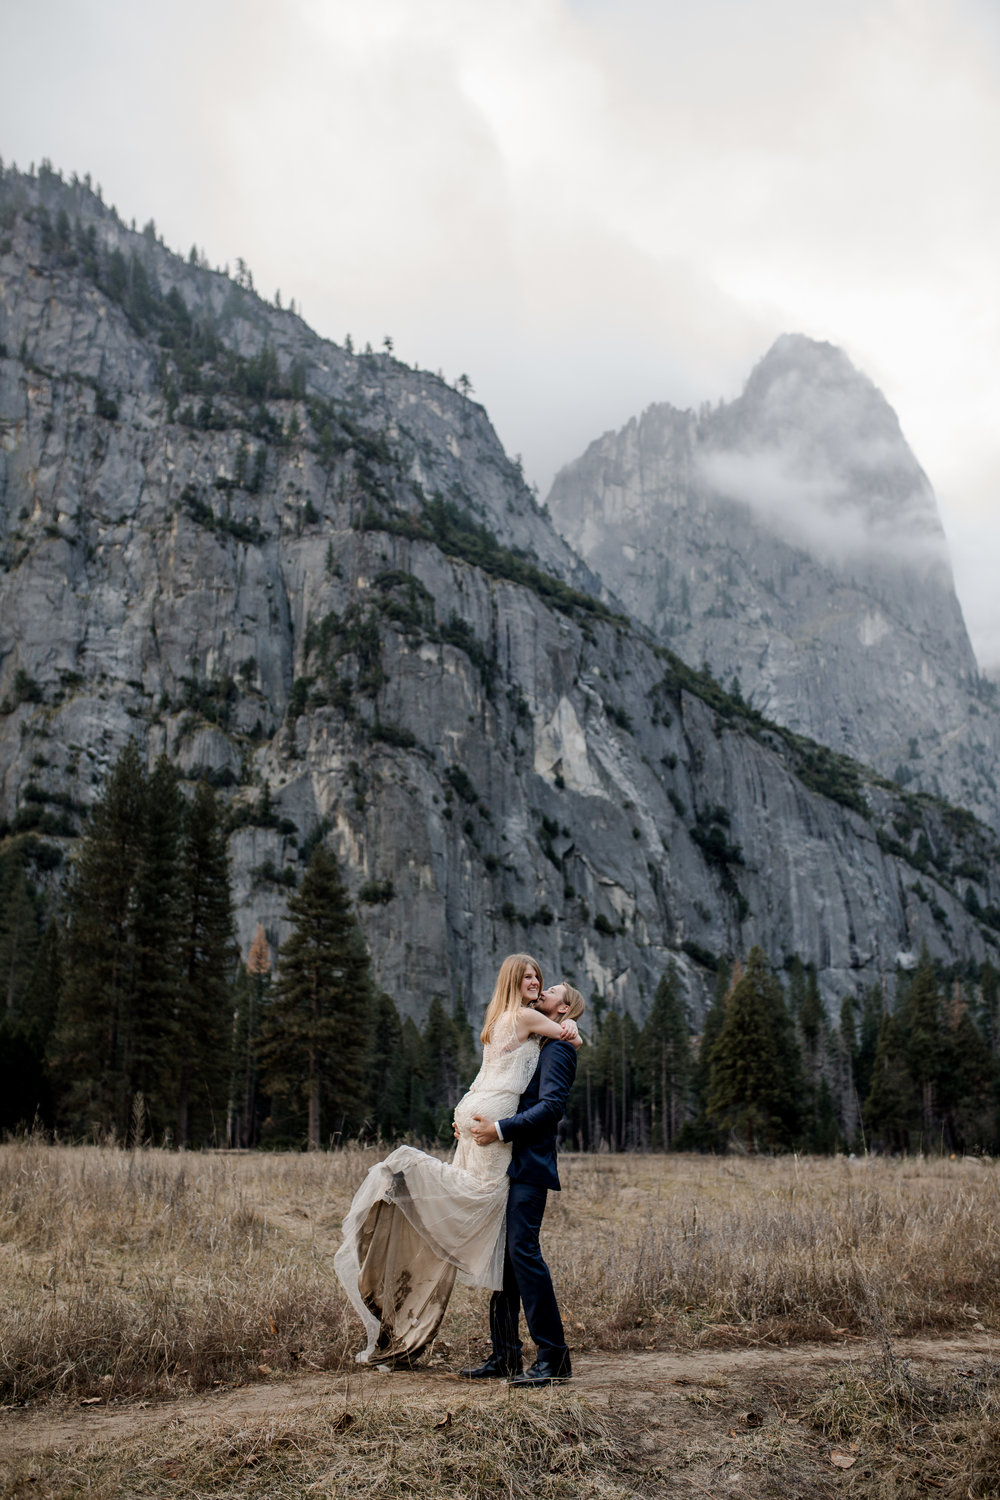 nicole-daacke-photography-yousemite-national-park-elopement-photographer-winter-cloud-moody-elope-inspiration-yosemite-valley-tunnel-view-winter-cloud-fog-weather-wedding-photos-68.jpg